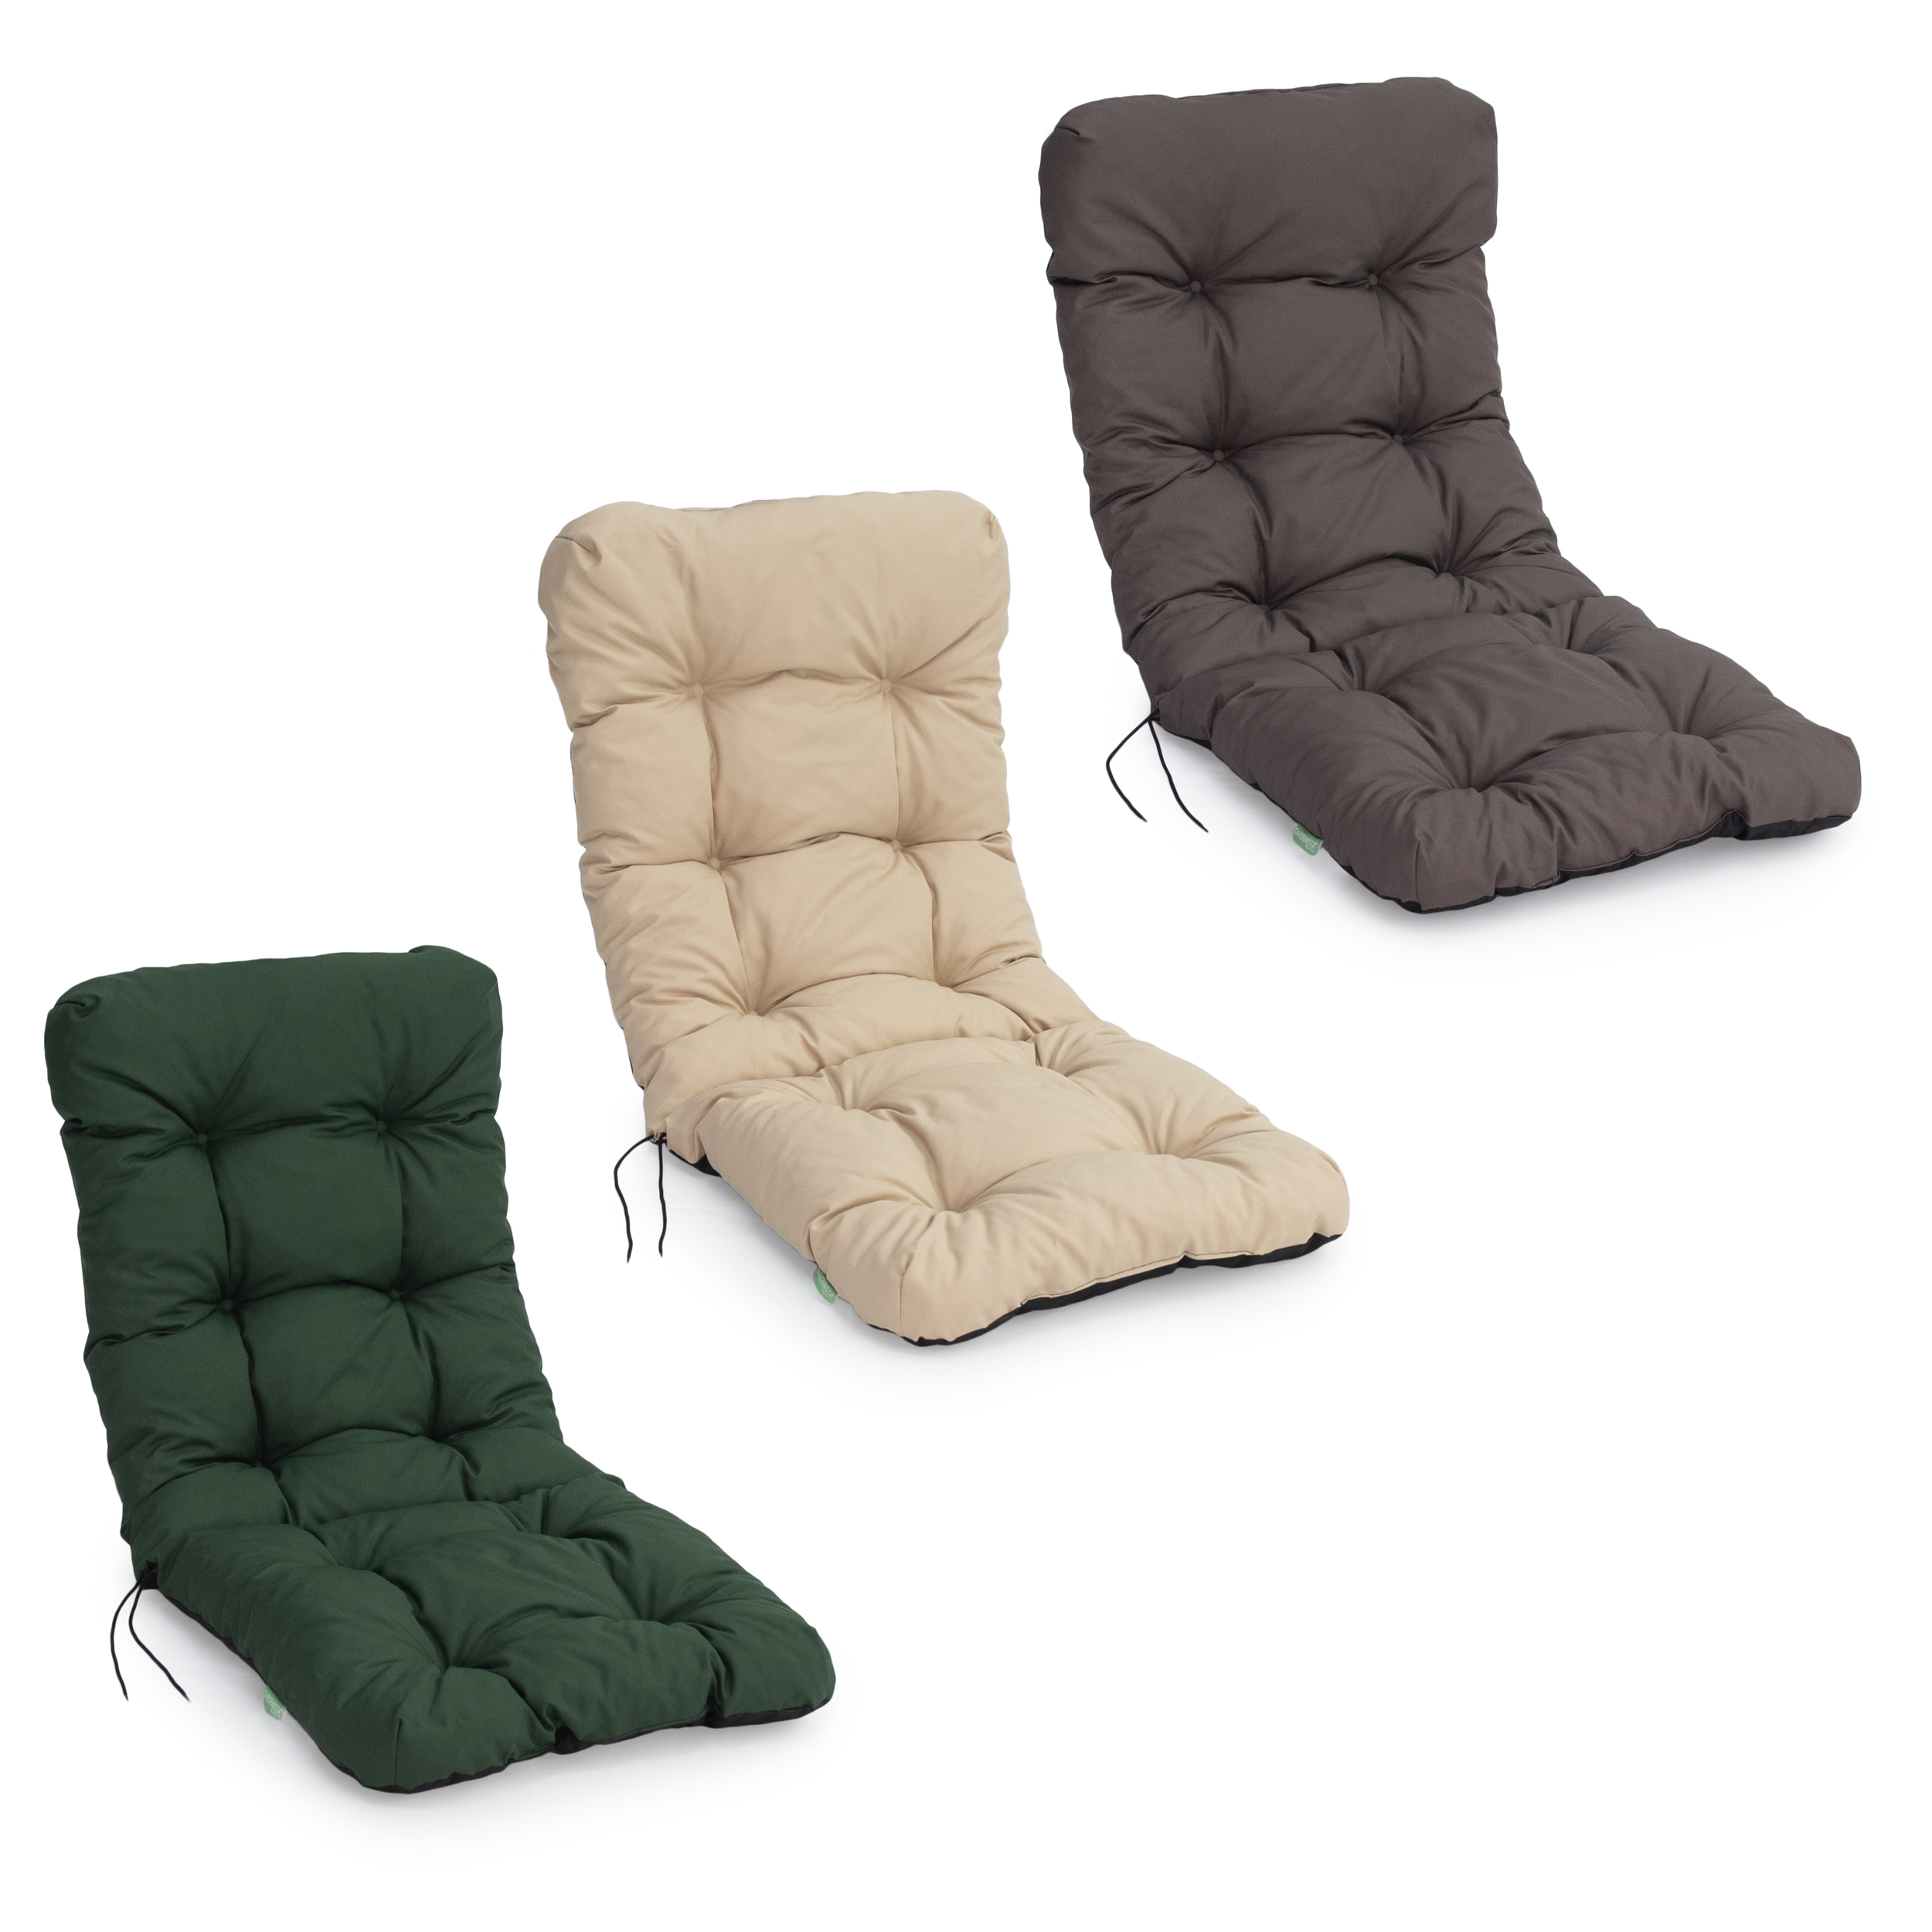 details about tufted padded outdoor high back chair cushions patio water resistant dining pads